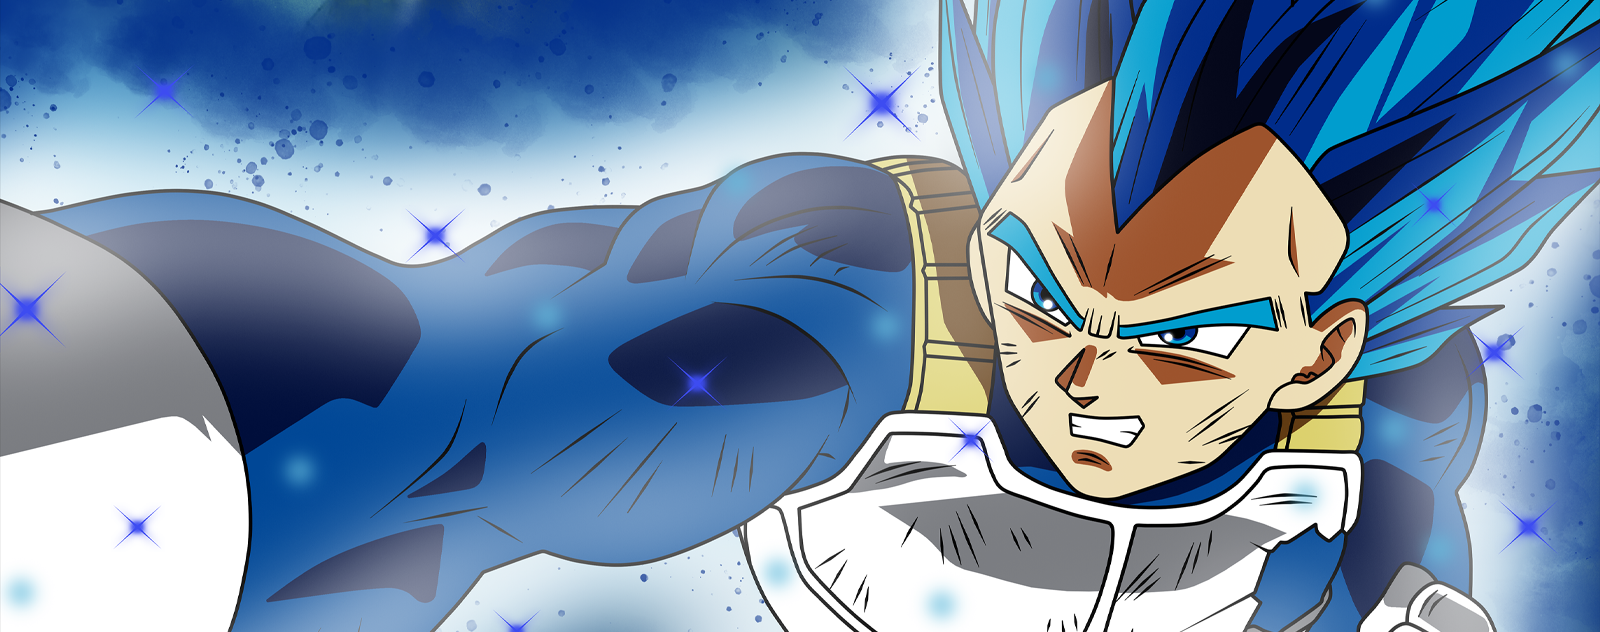 Vegeta Super Saiyan Blue Evolue